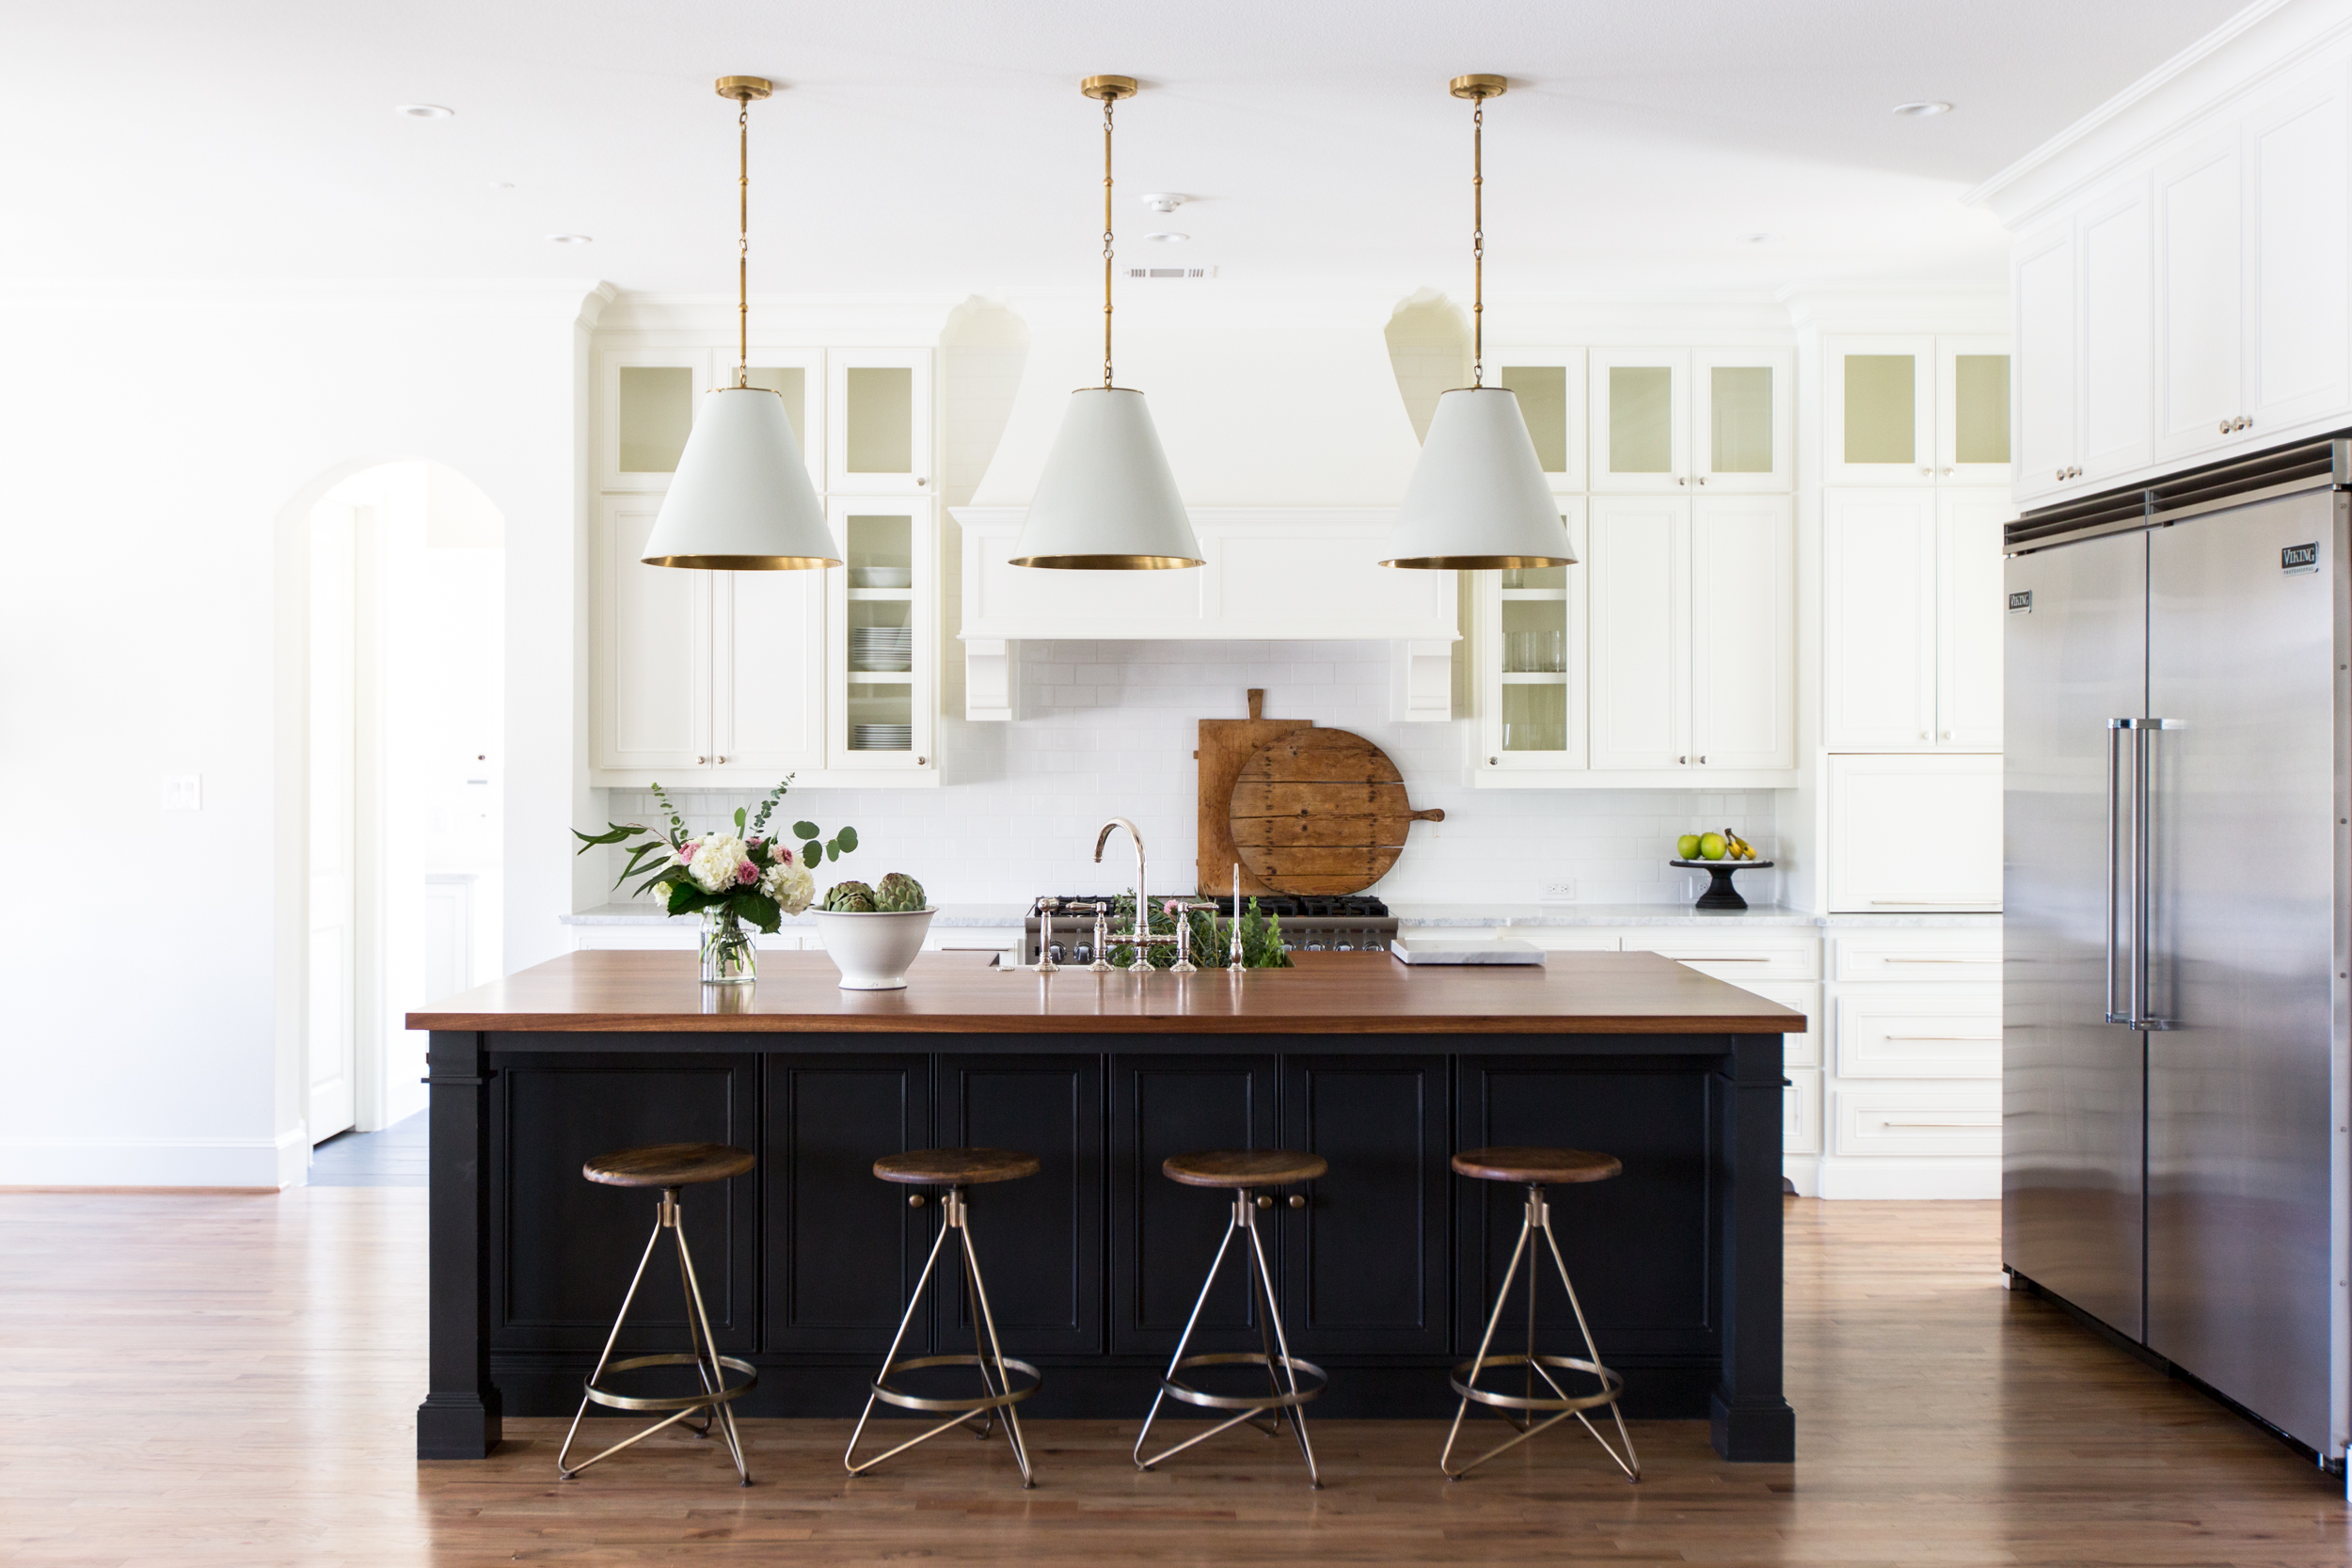 9 Chic Ways to Use Glass Kitchen Cabinet Doors | Hunker